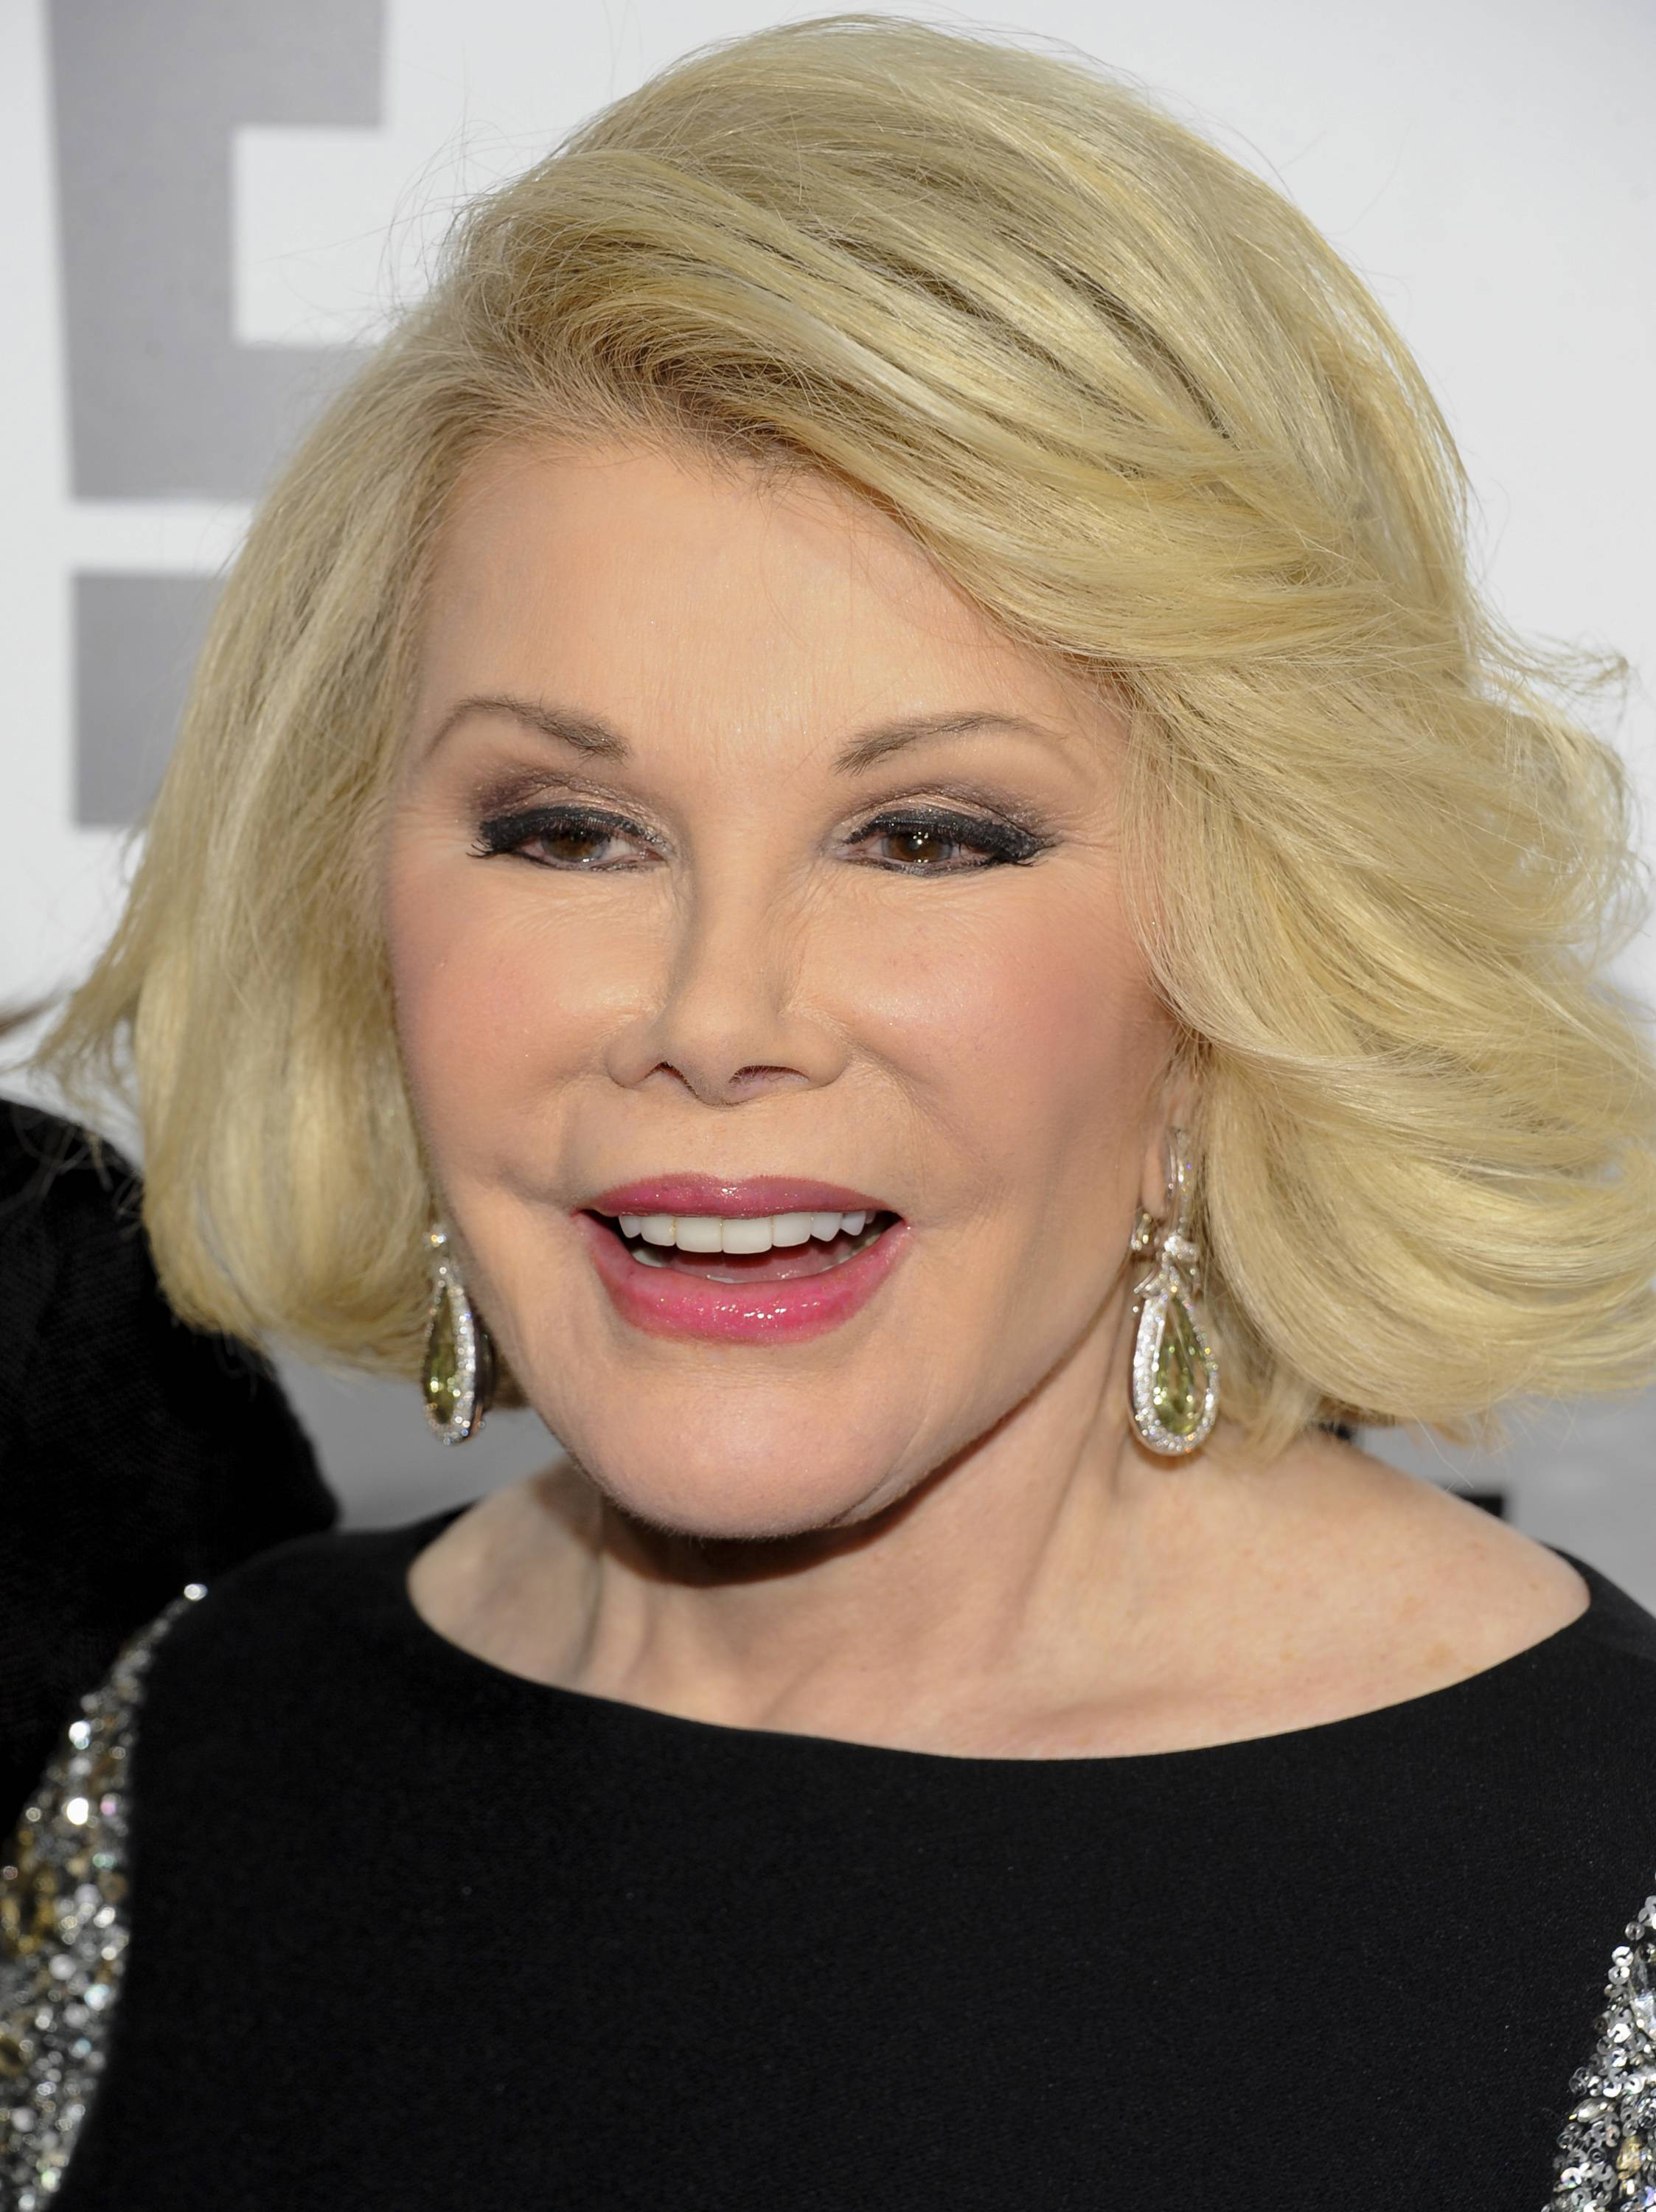 The New York State Health Department is investigating the circumstances surrounding Joan Rivers' cardiac arrest during an outpatient procedure.